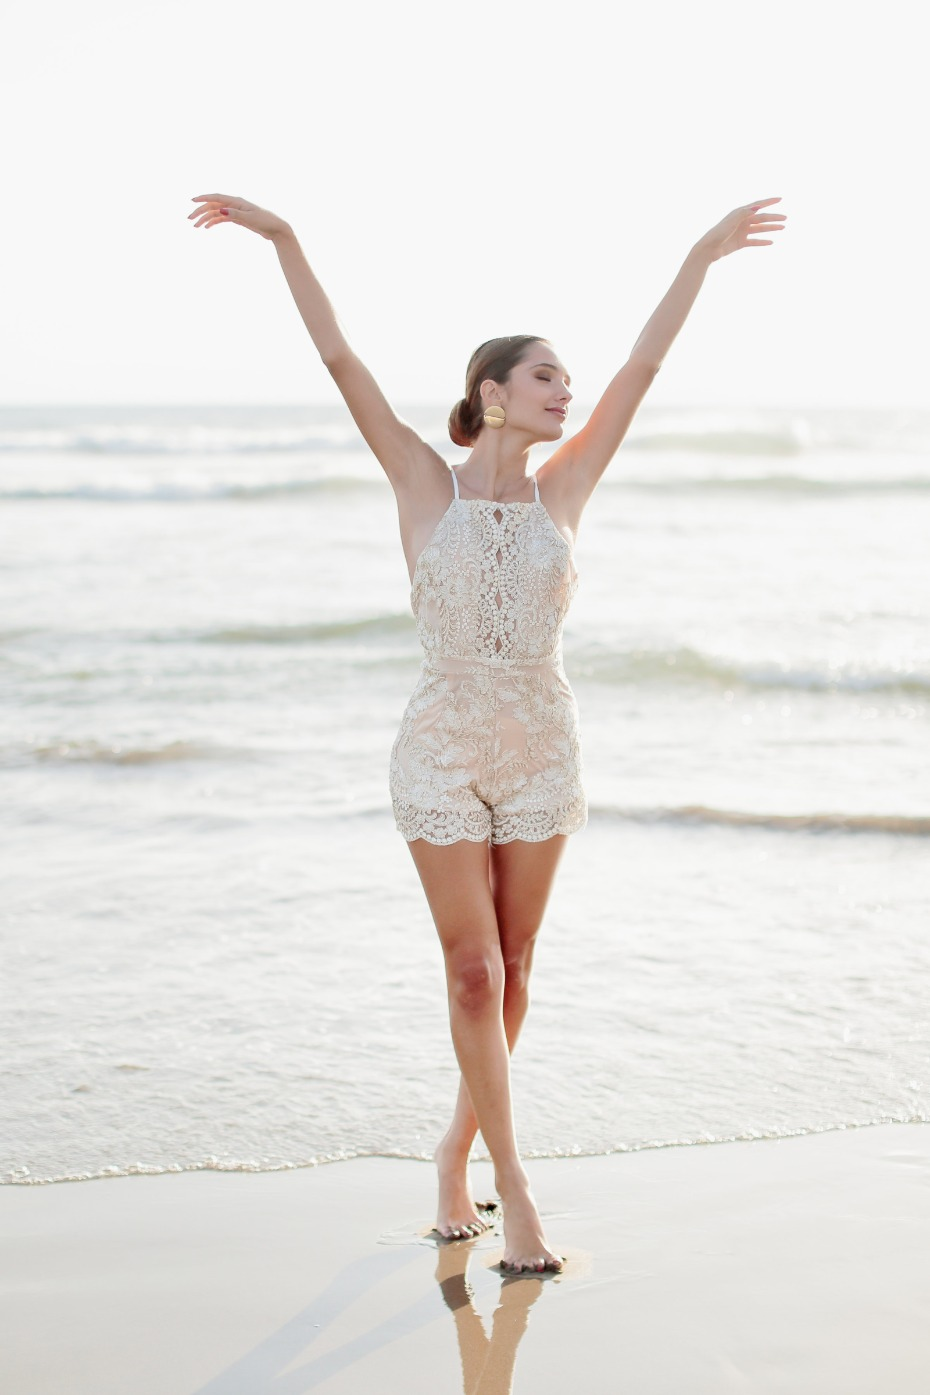 Lace romper for a honeymoon in Maspalomas